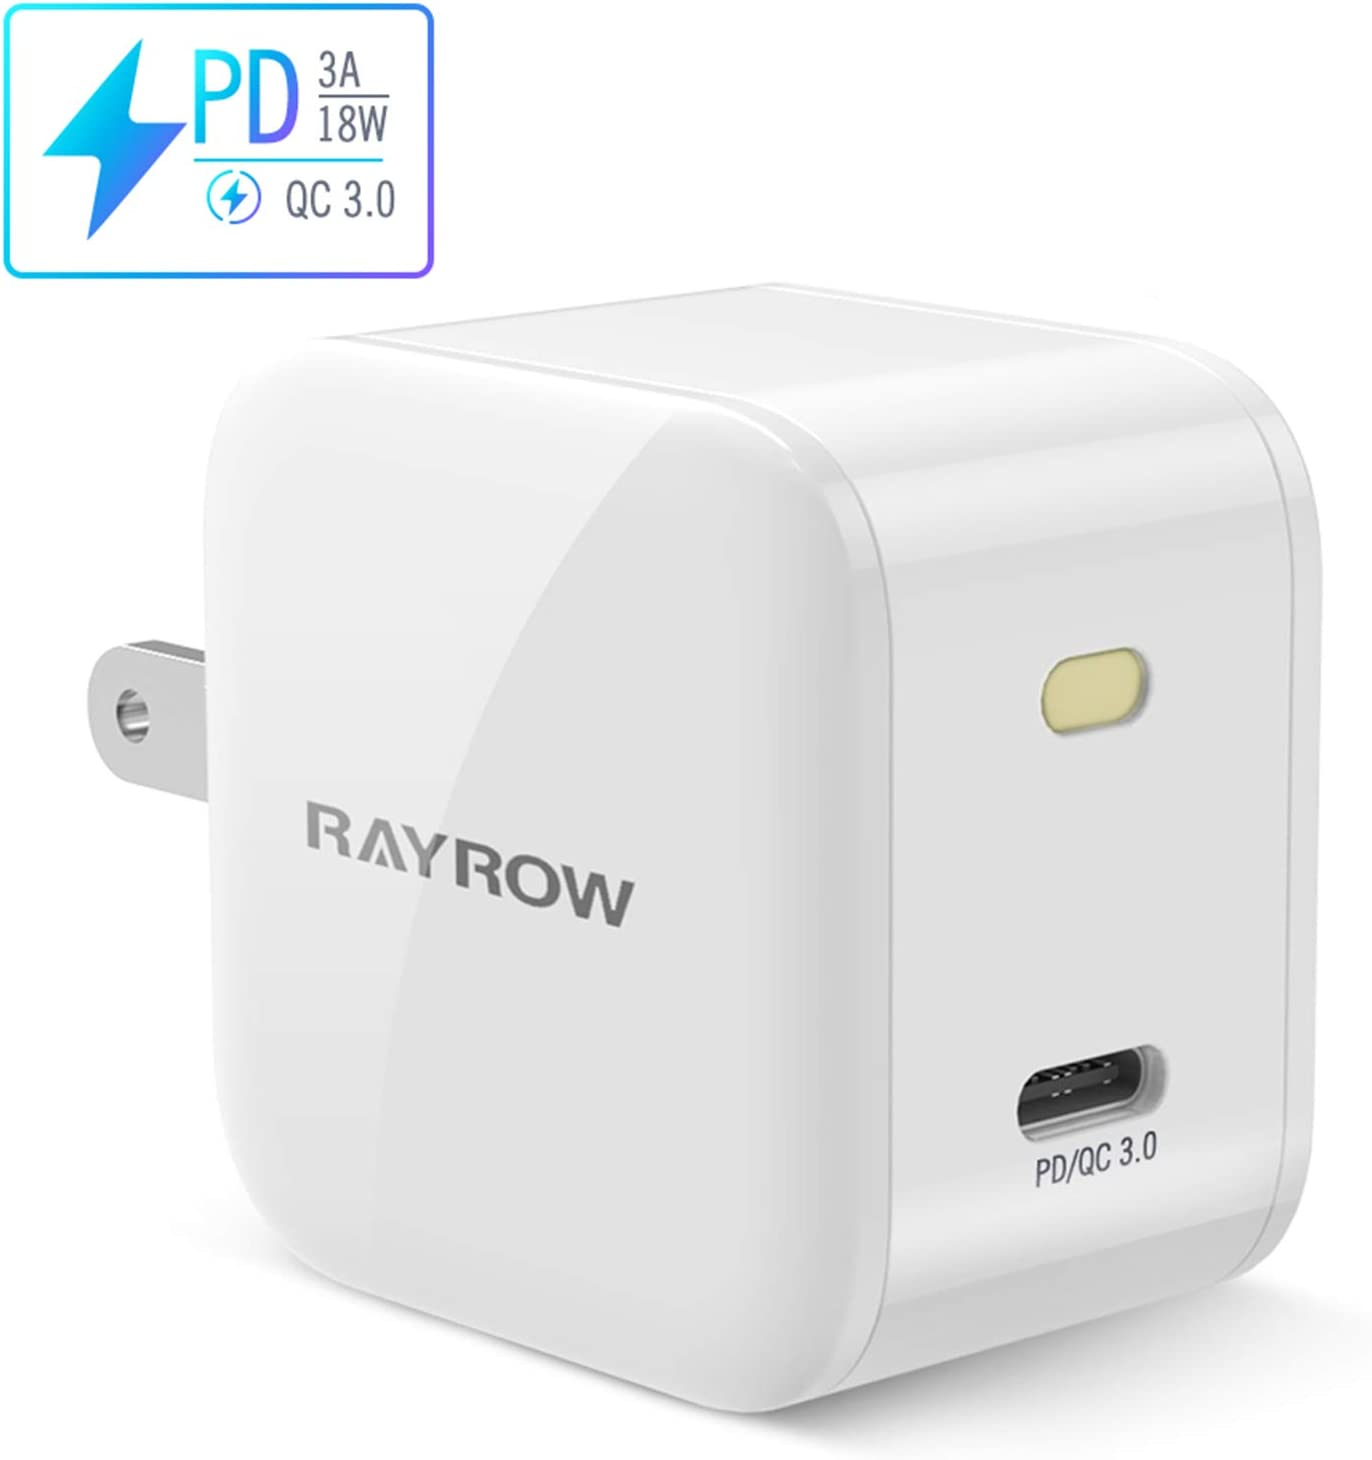 USB C Wall Charger, 18W PD3.0 Type C Power Delivery Fast Charging Power Adapter with Foldable Plug for iPhone 11/Pro/Max/XS/Max/XR/X, Pixel, Galaxy, iPad Pro and More